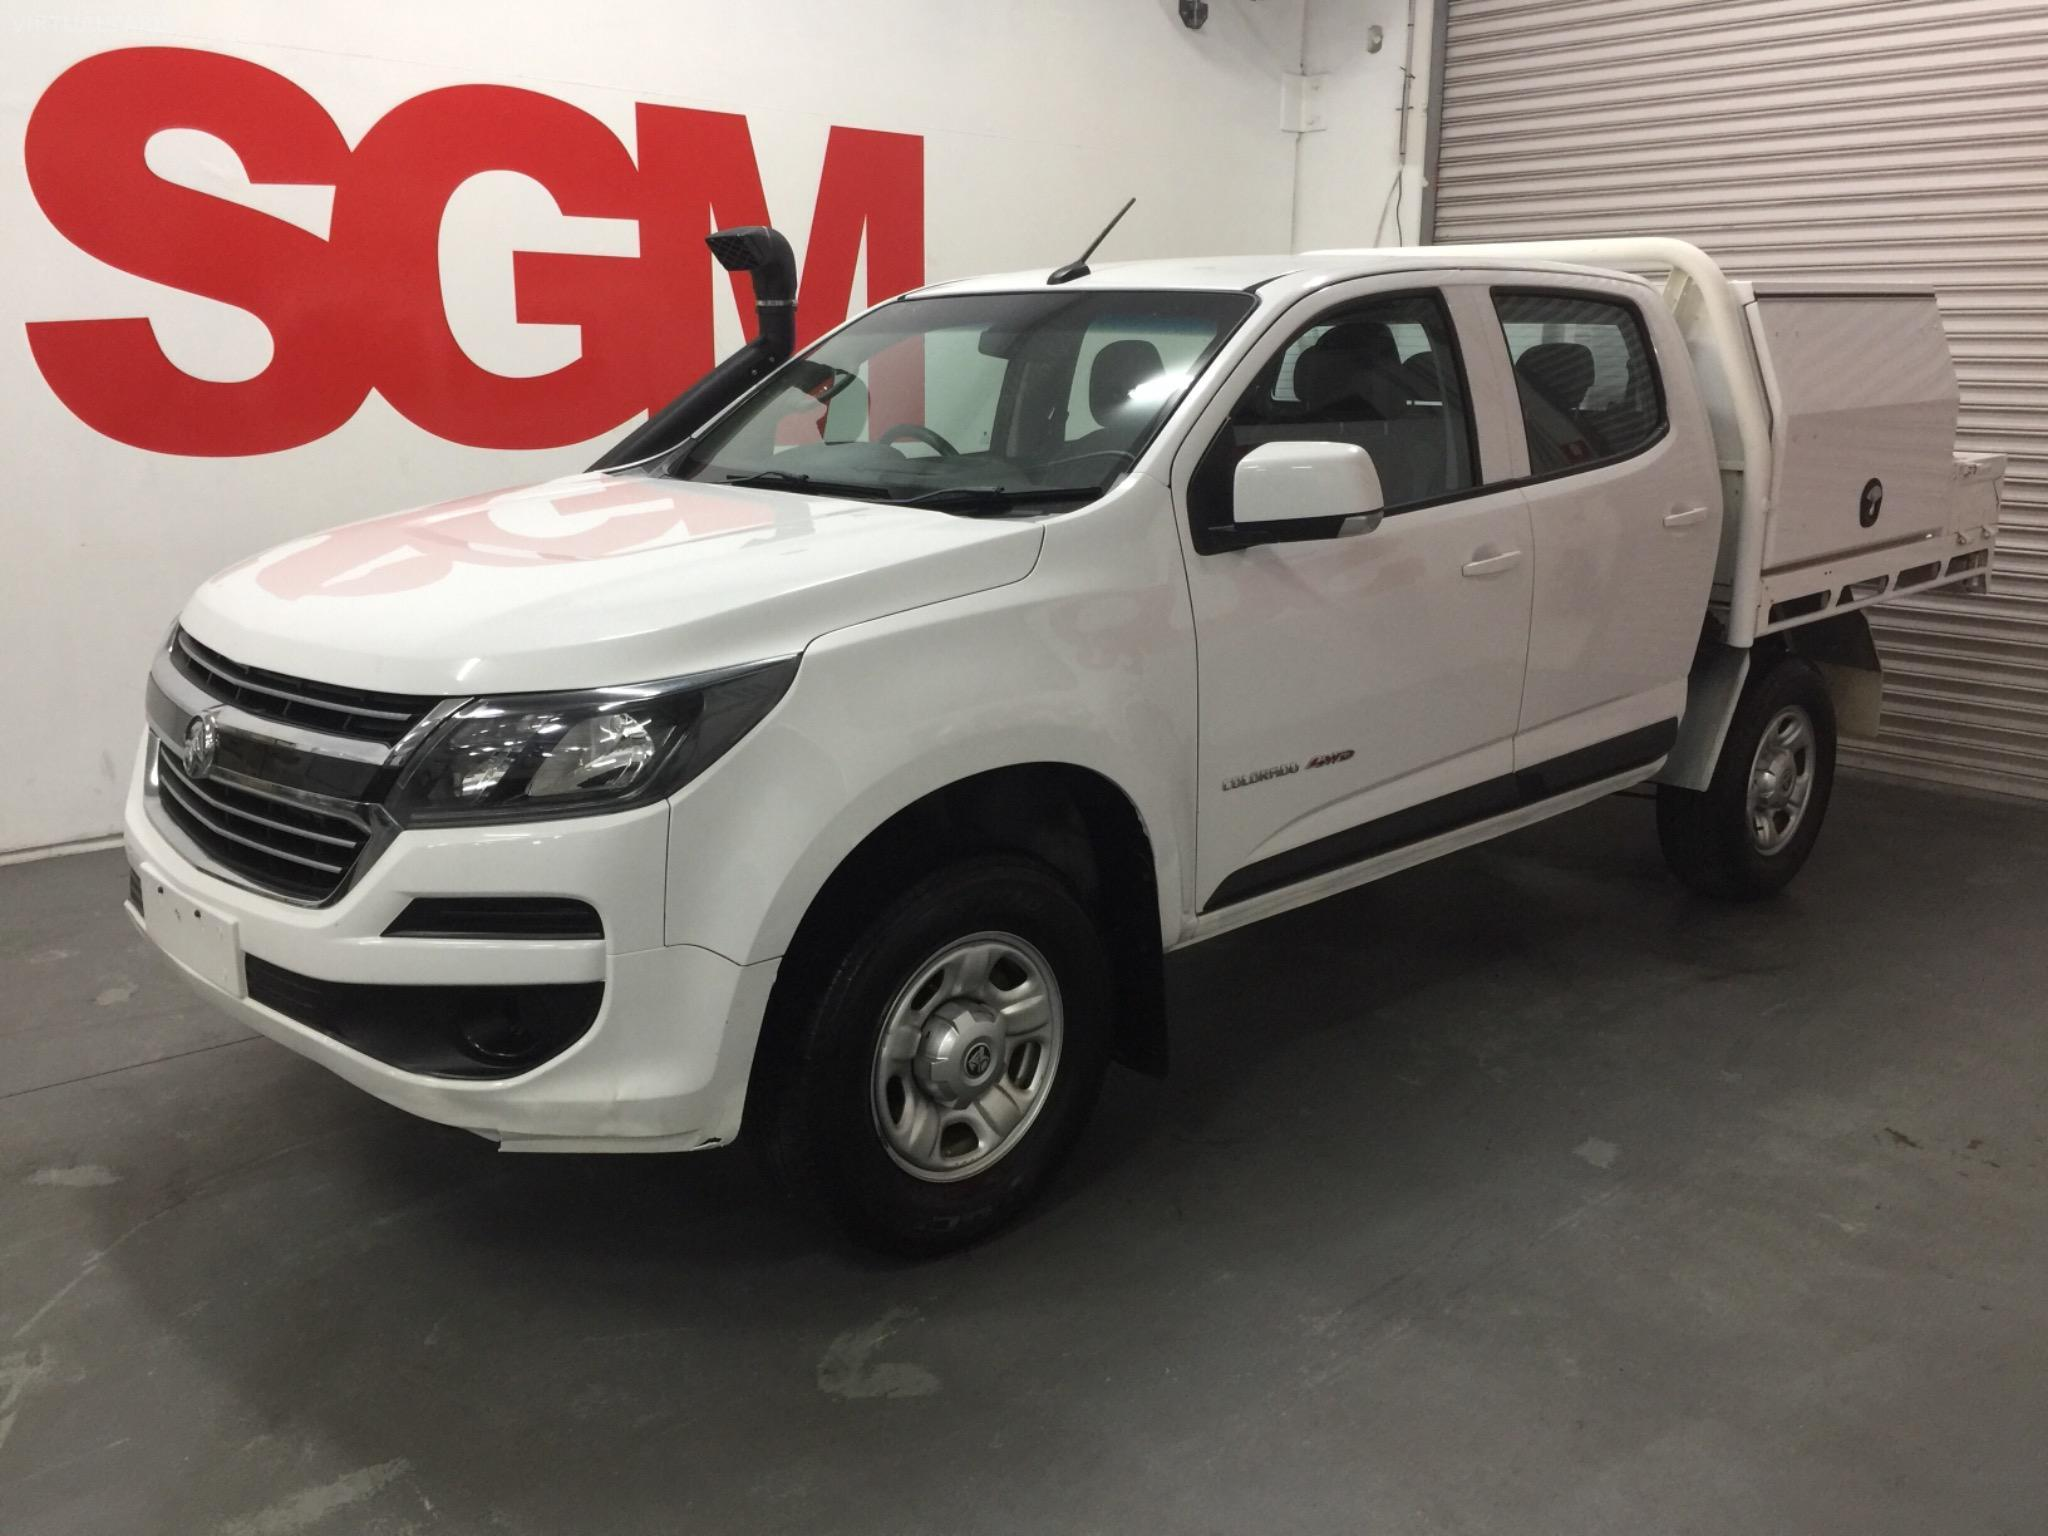 2017 Holden Colorado RG LS Cab Chassis Crew Cab 4dr Man 6sp 2.8DT Picture 8